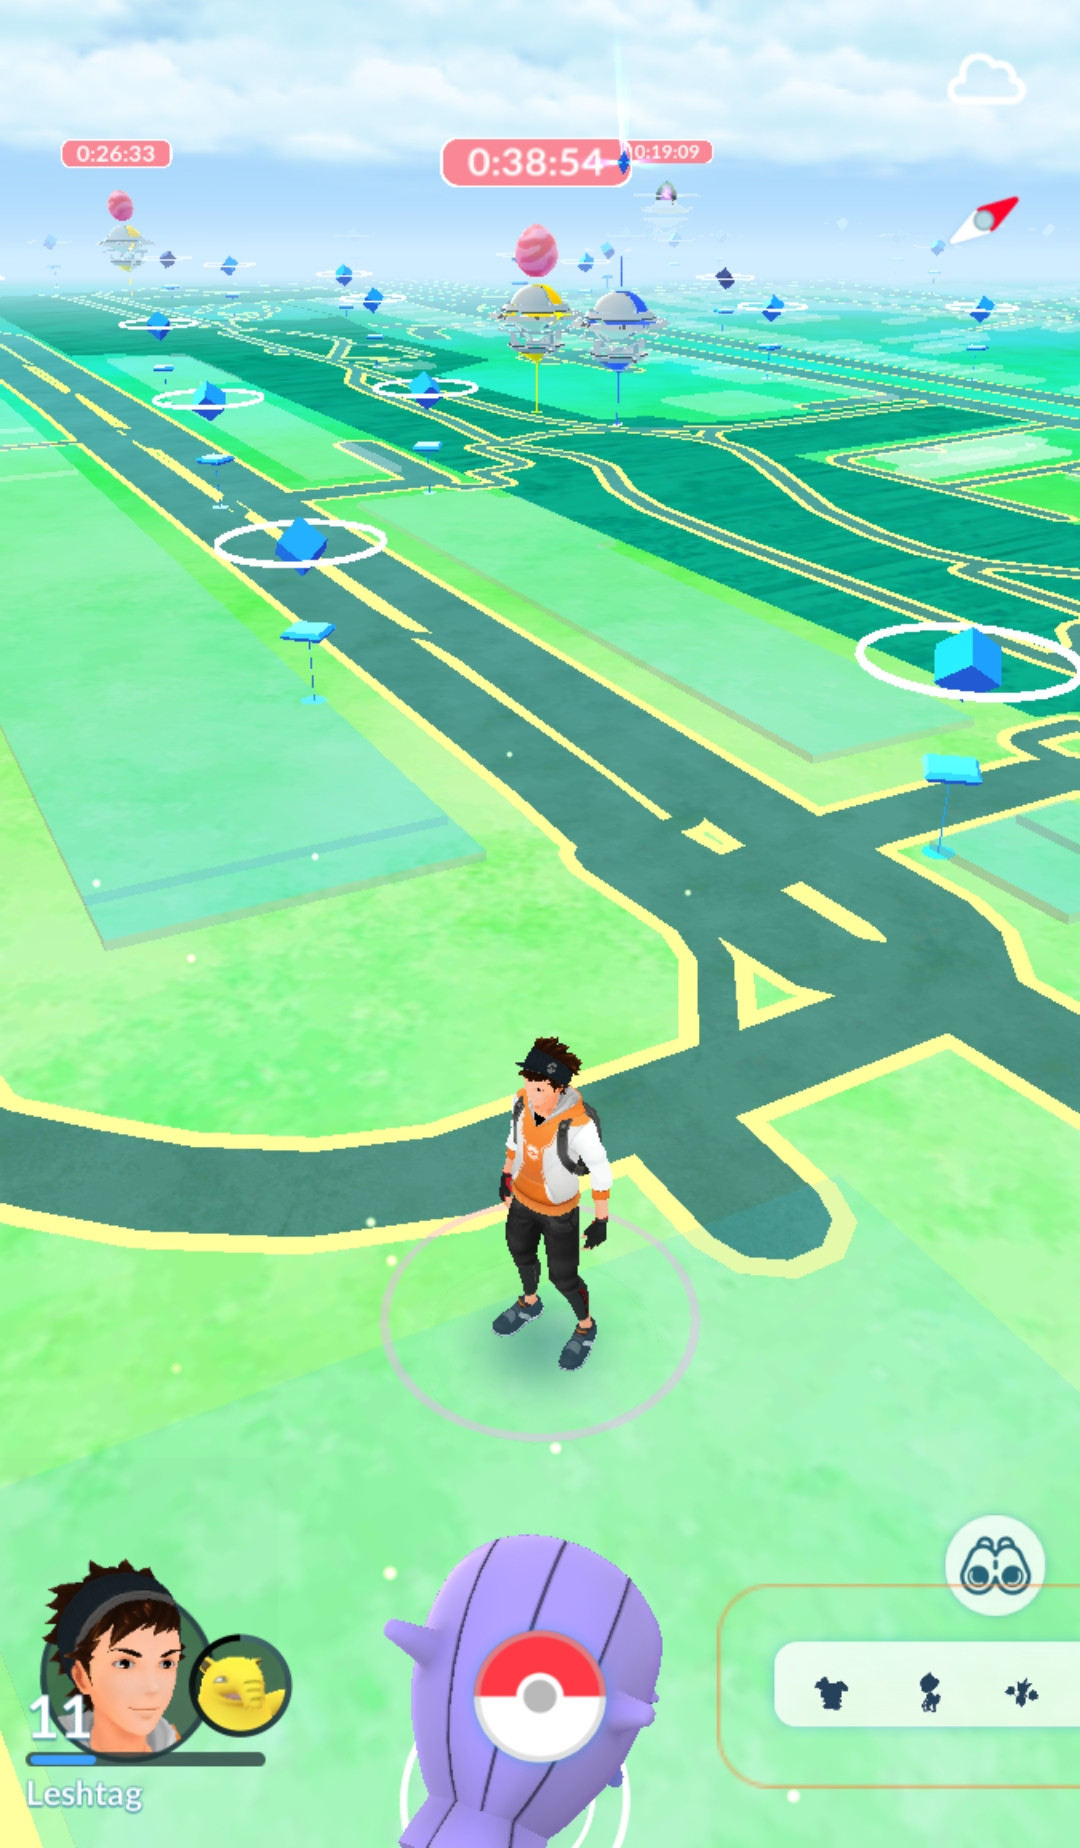 Screenshot 1 - Pokémon GO (APK)